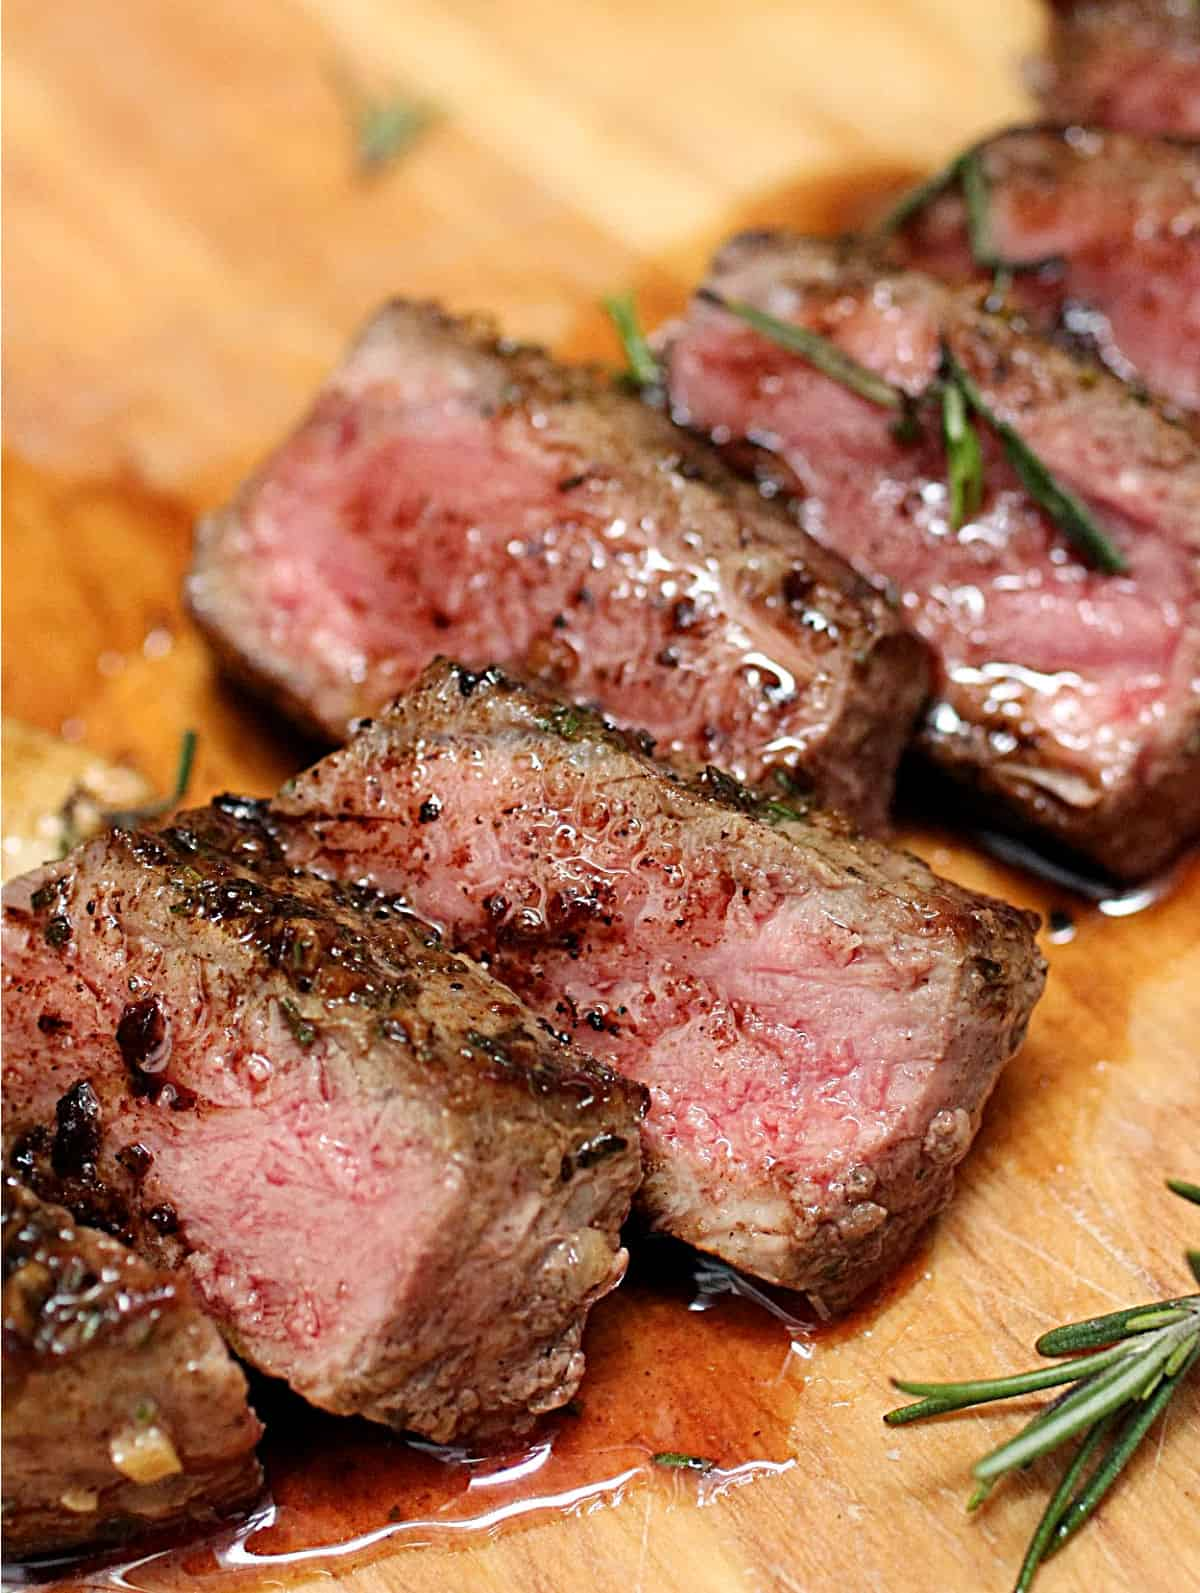 Close up of slices of juicy steak on wooden board, rosemary sprigs